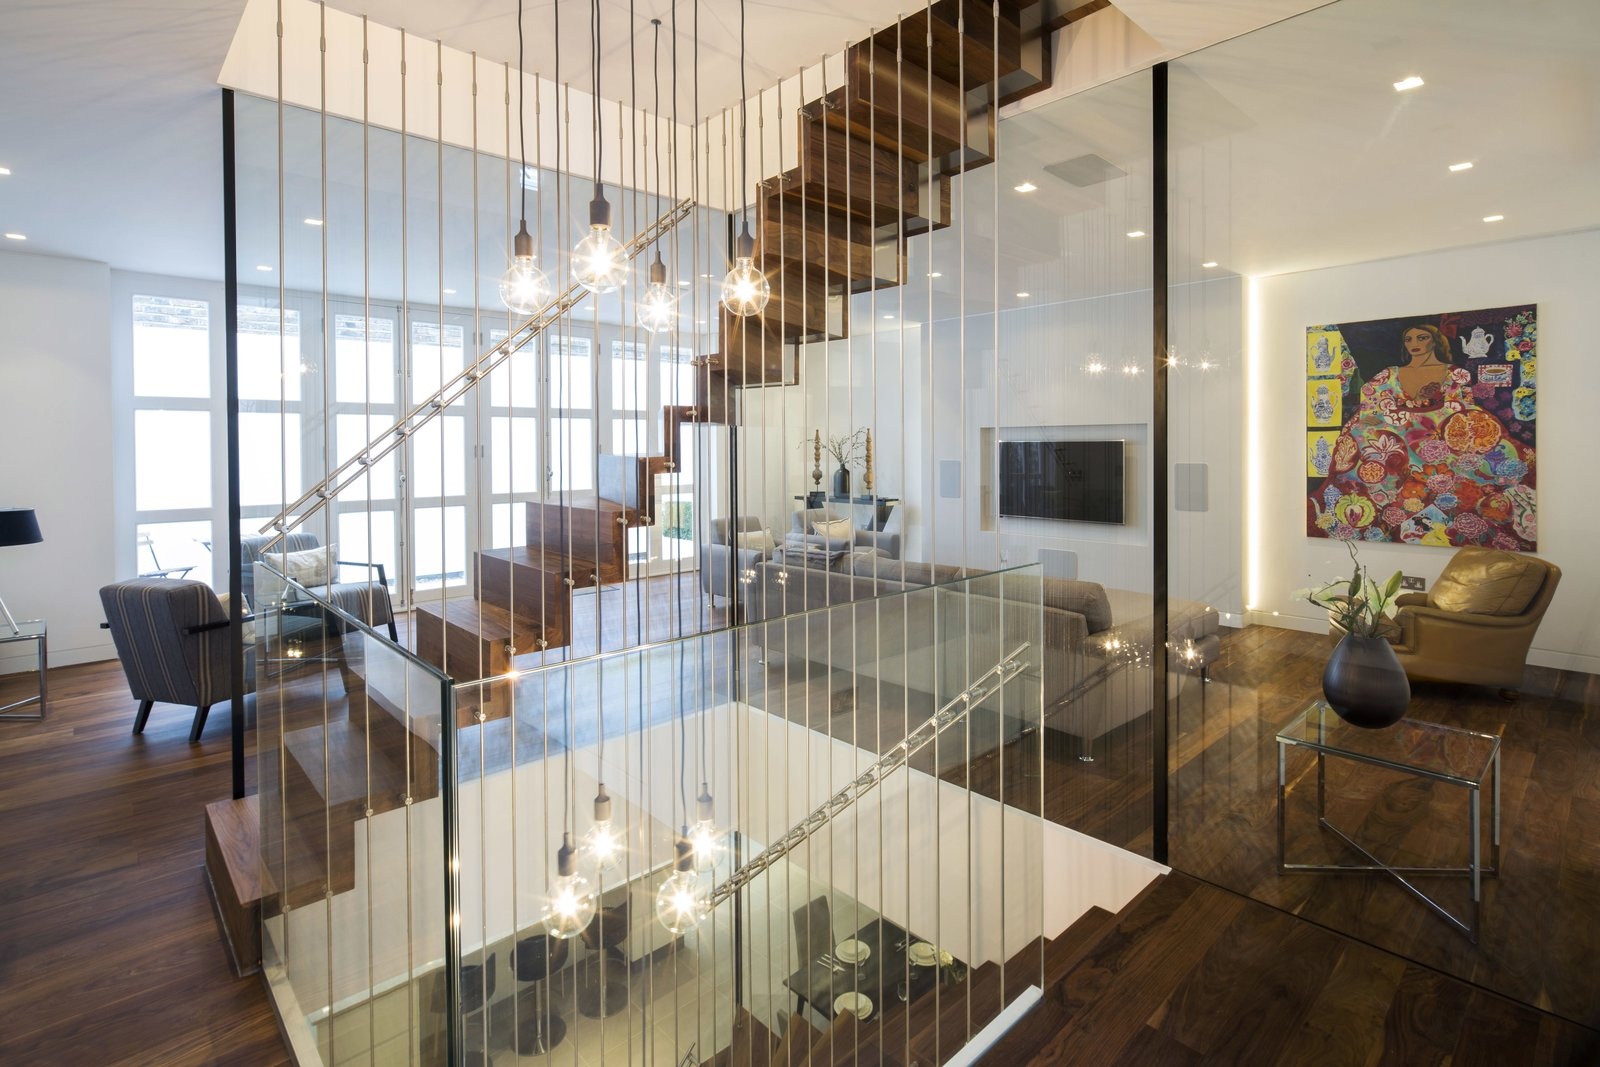 Staircase, Wood Tread, and Metal Railing The project involved the redevelopment of an existing property in St John's Wood. As part of the works a new basement was constructed to the plan area of the property along with remodelling of internal space to create large open areas at ground floor. A new two storey feature stair to link the basement to first floors.  Architect / Designer: Neil Tomlinson Architects PhotographyAgnese Sanvito  Woronzo Road